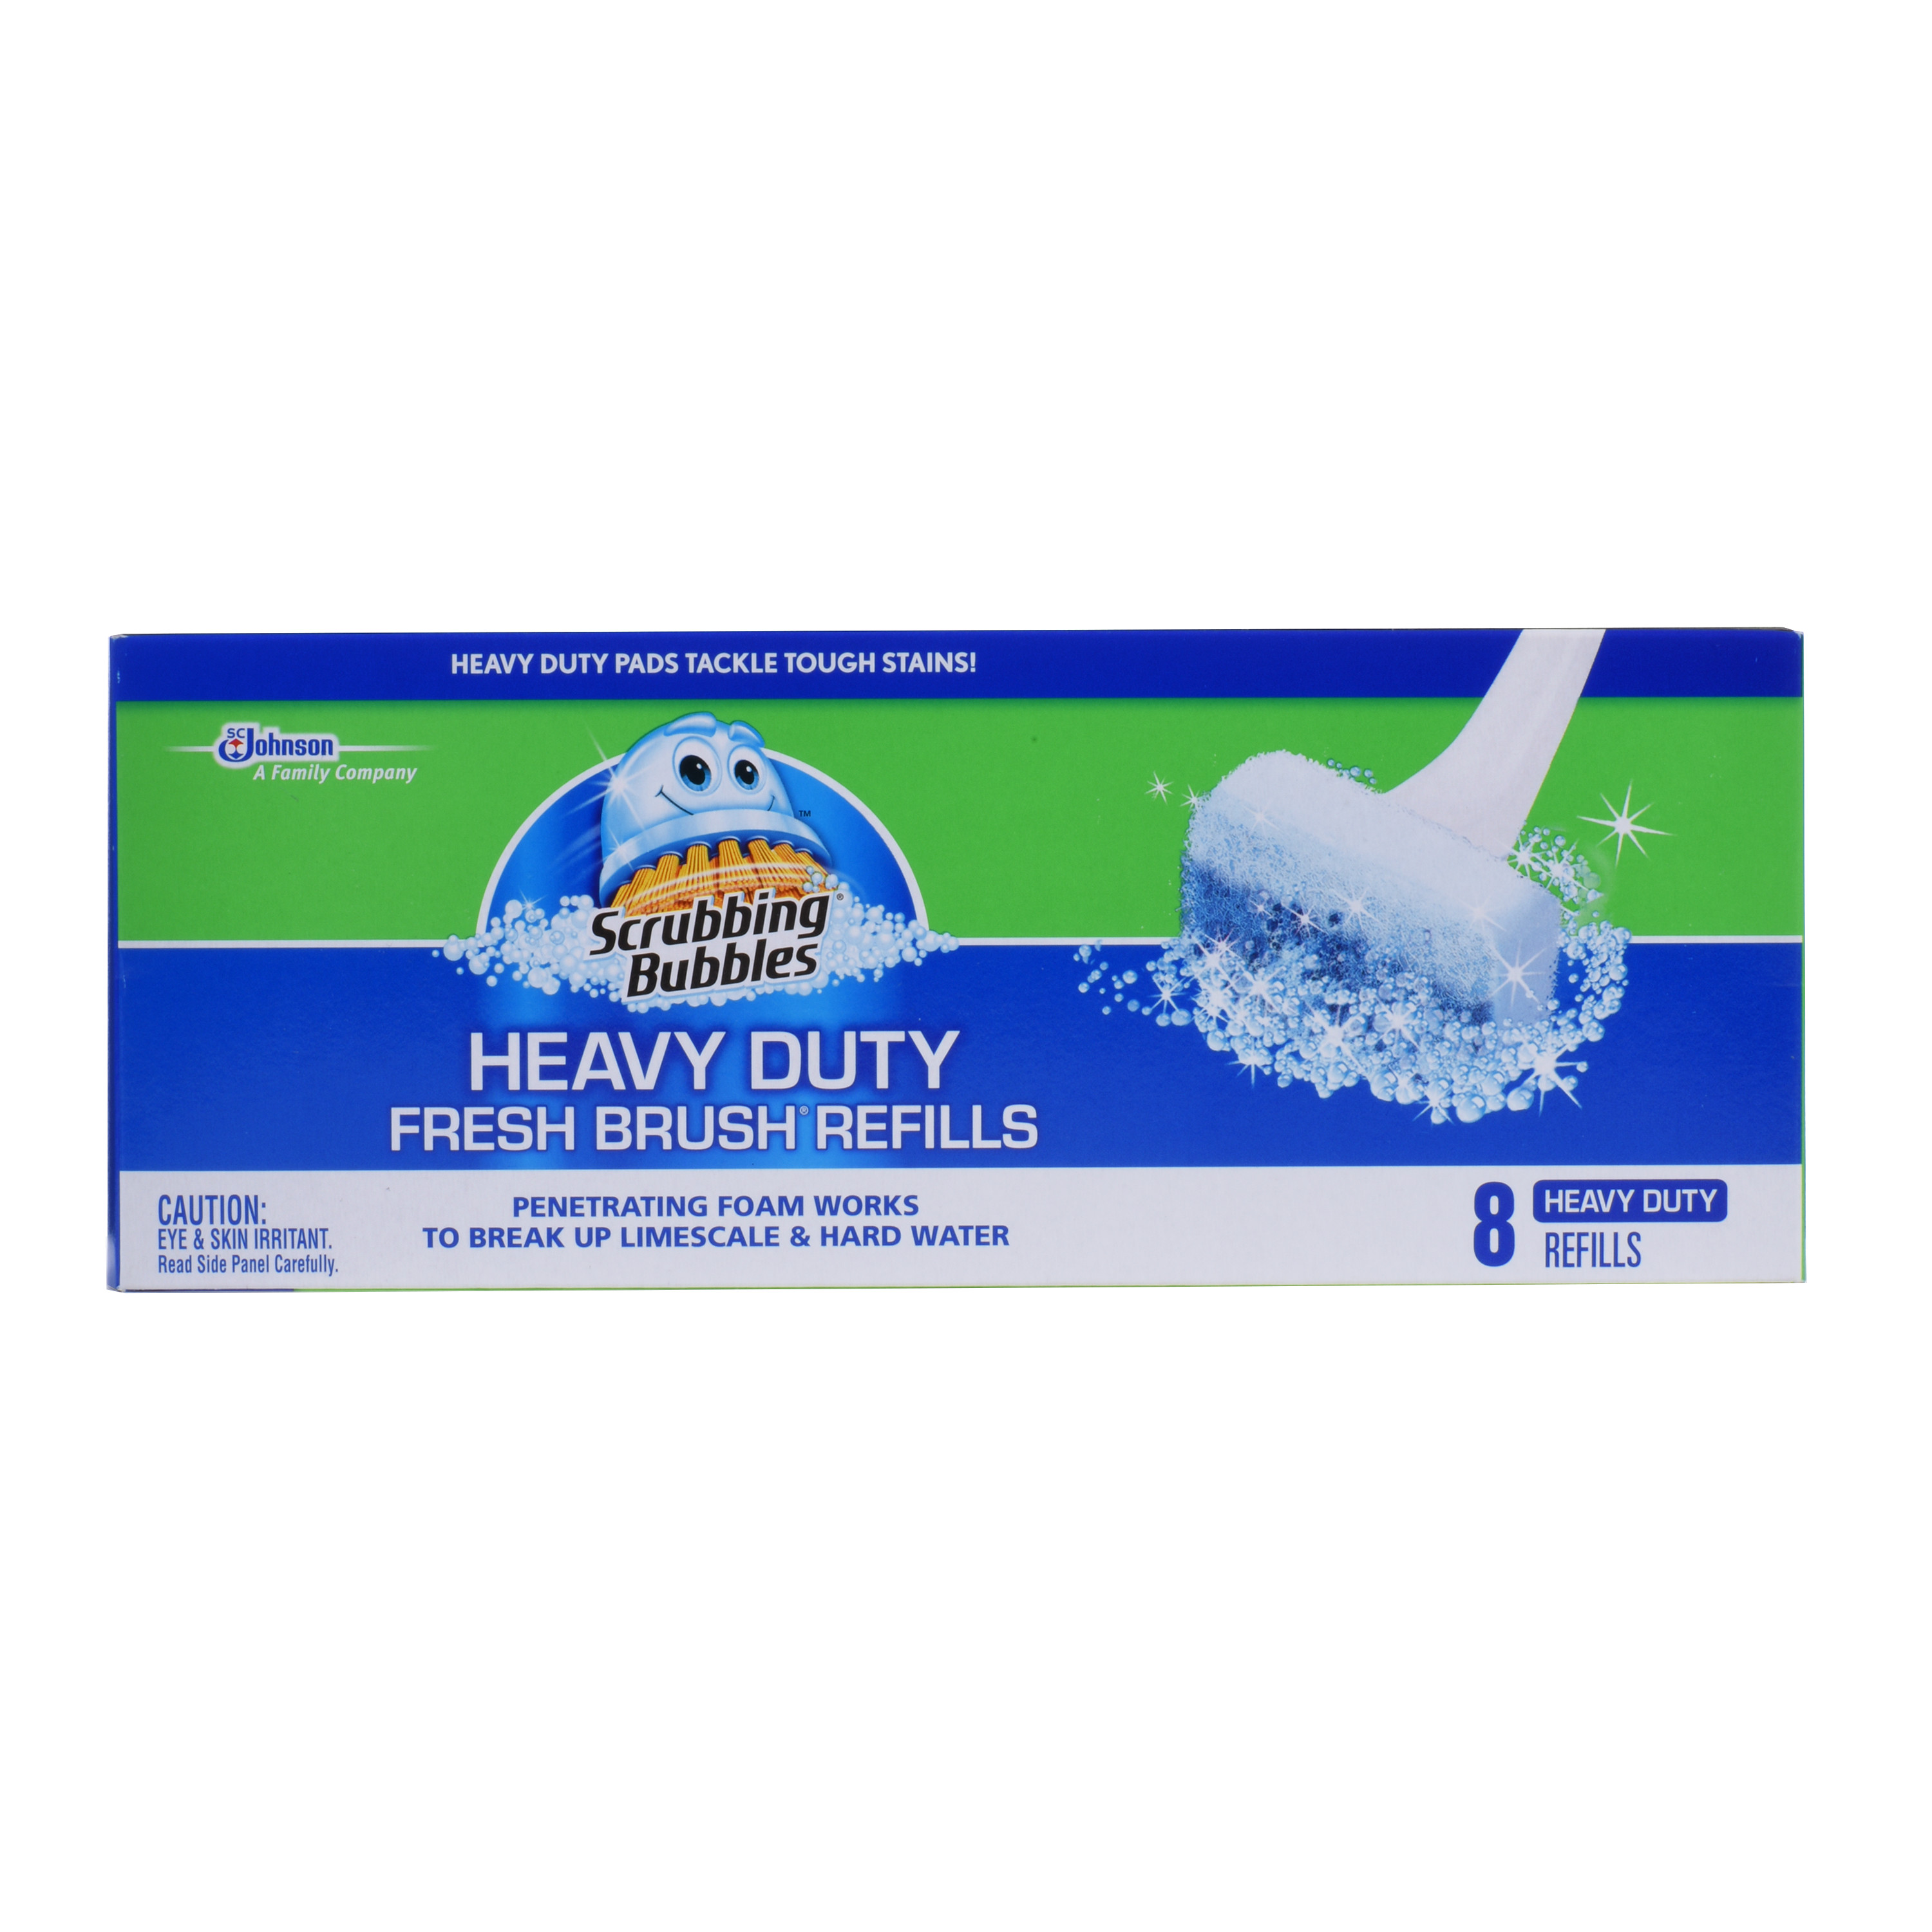 Scrubbing Bubbles Heavy Duty Fresh Brush Refills 8 count